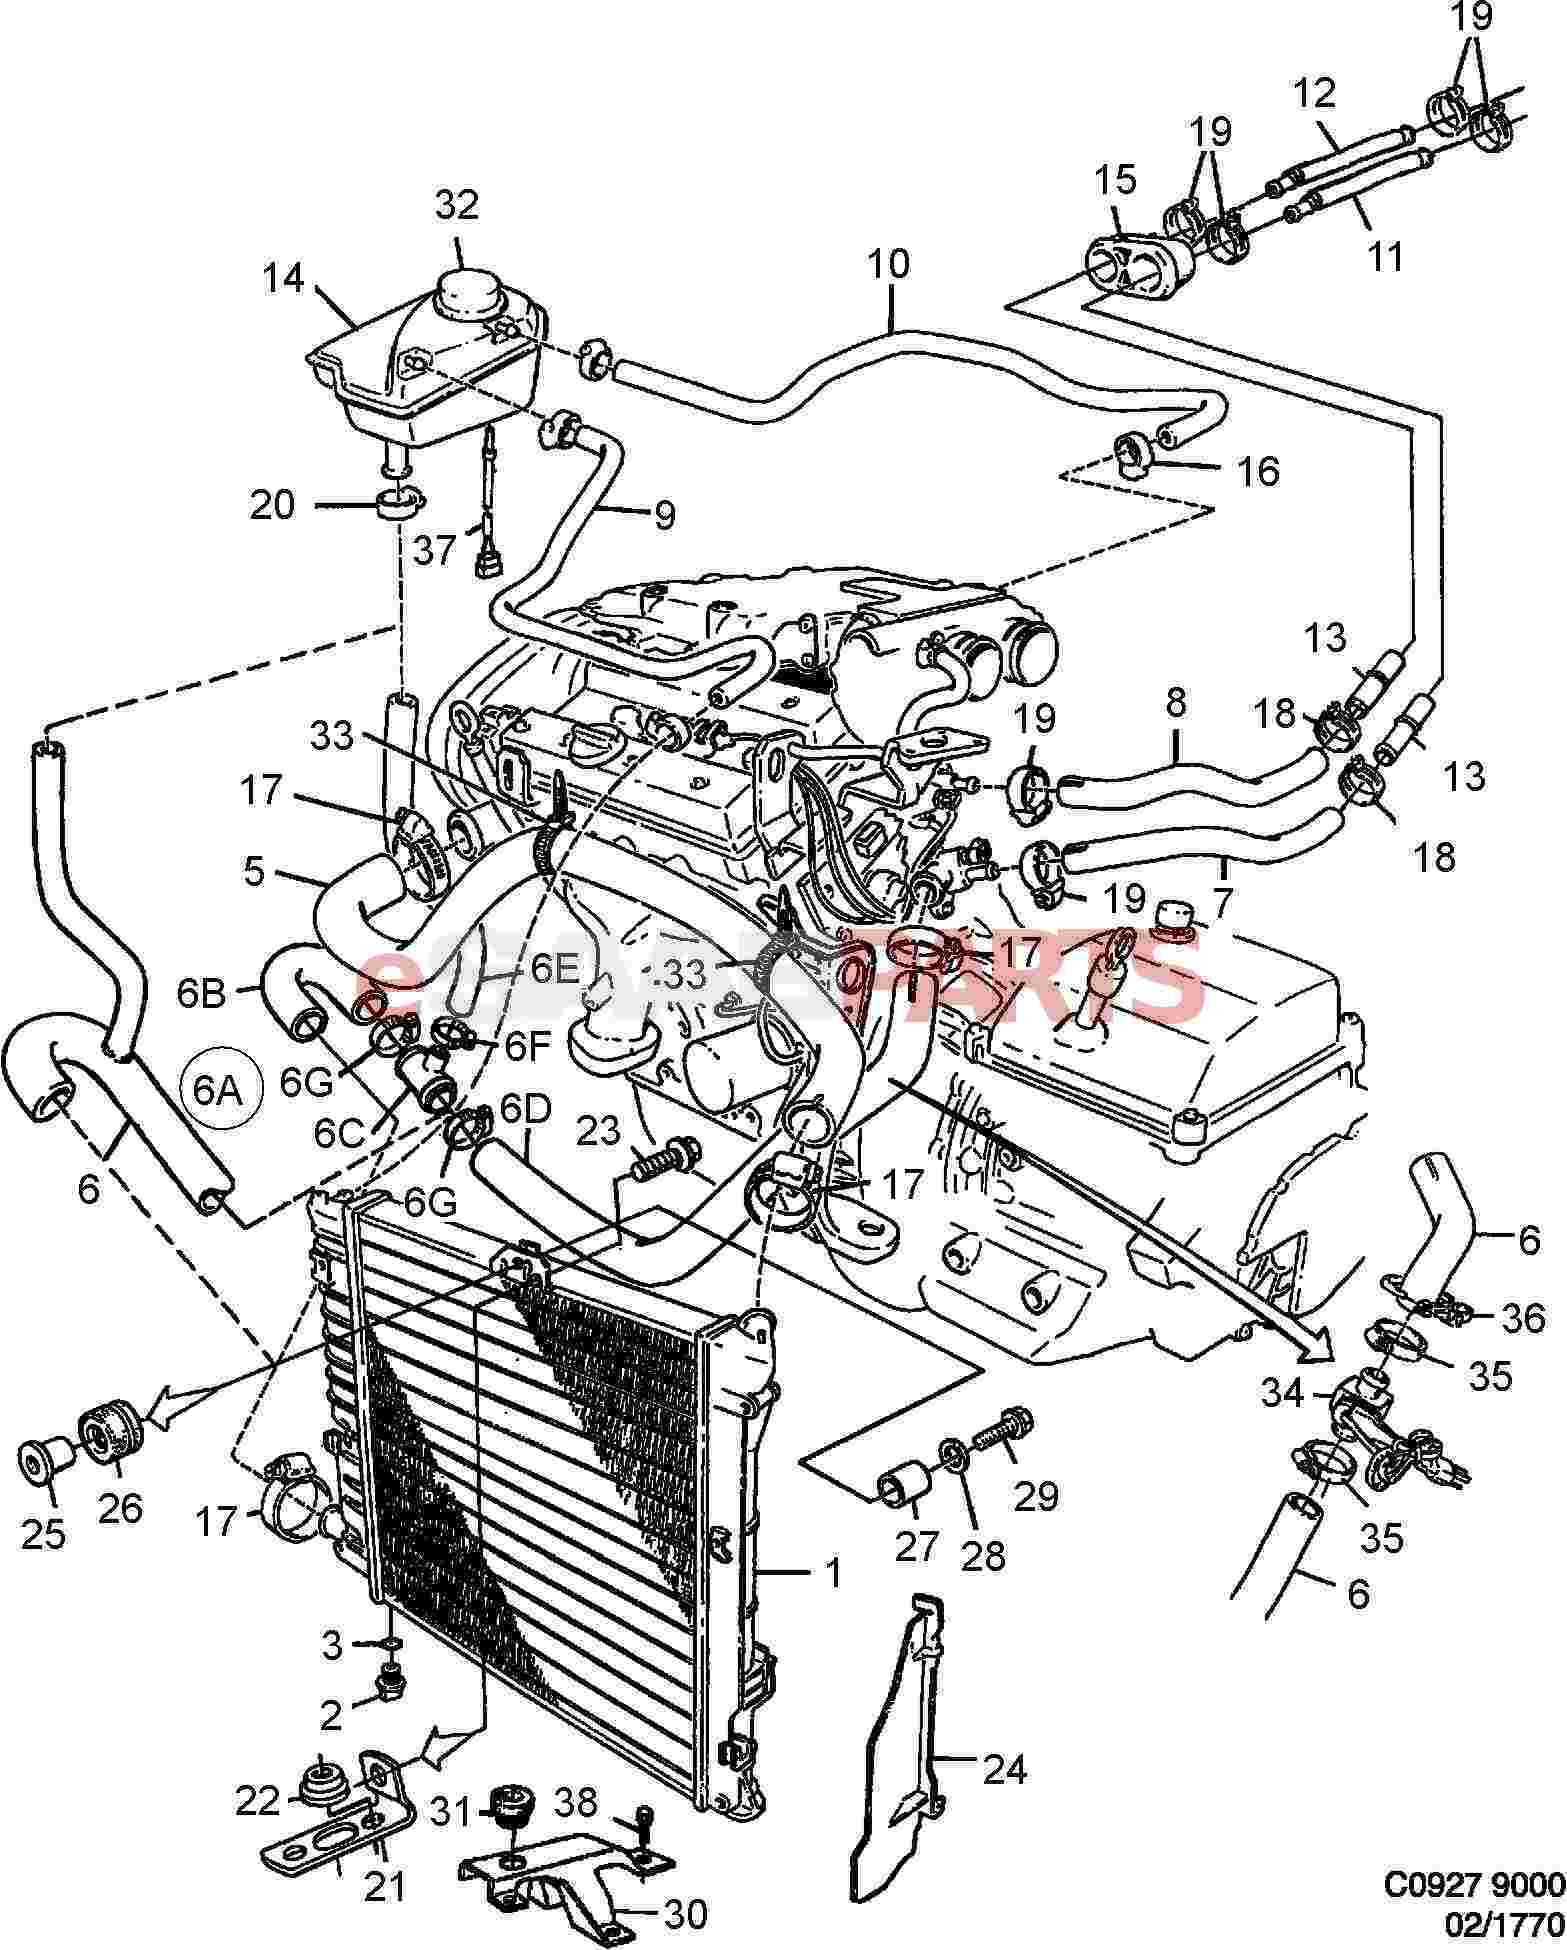 hight resolution of 2003 mercury mountaineer engine diagram